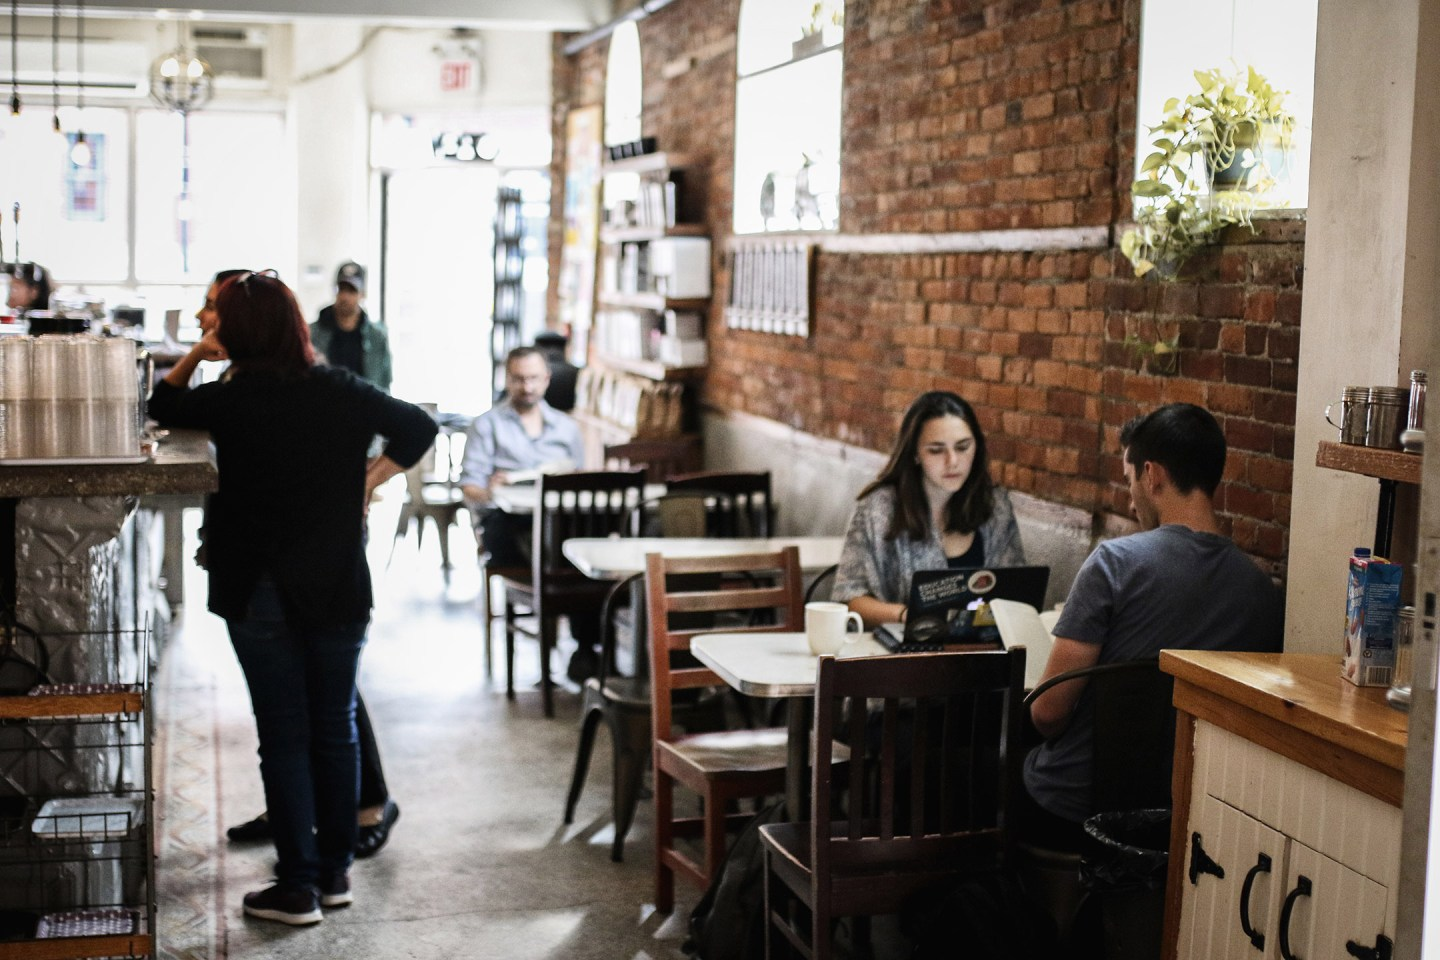 MULBERRY STREET COFFEEHOUSE:  HAND-CRAFTING AN AUTHENTIC SPACE